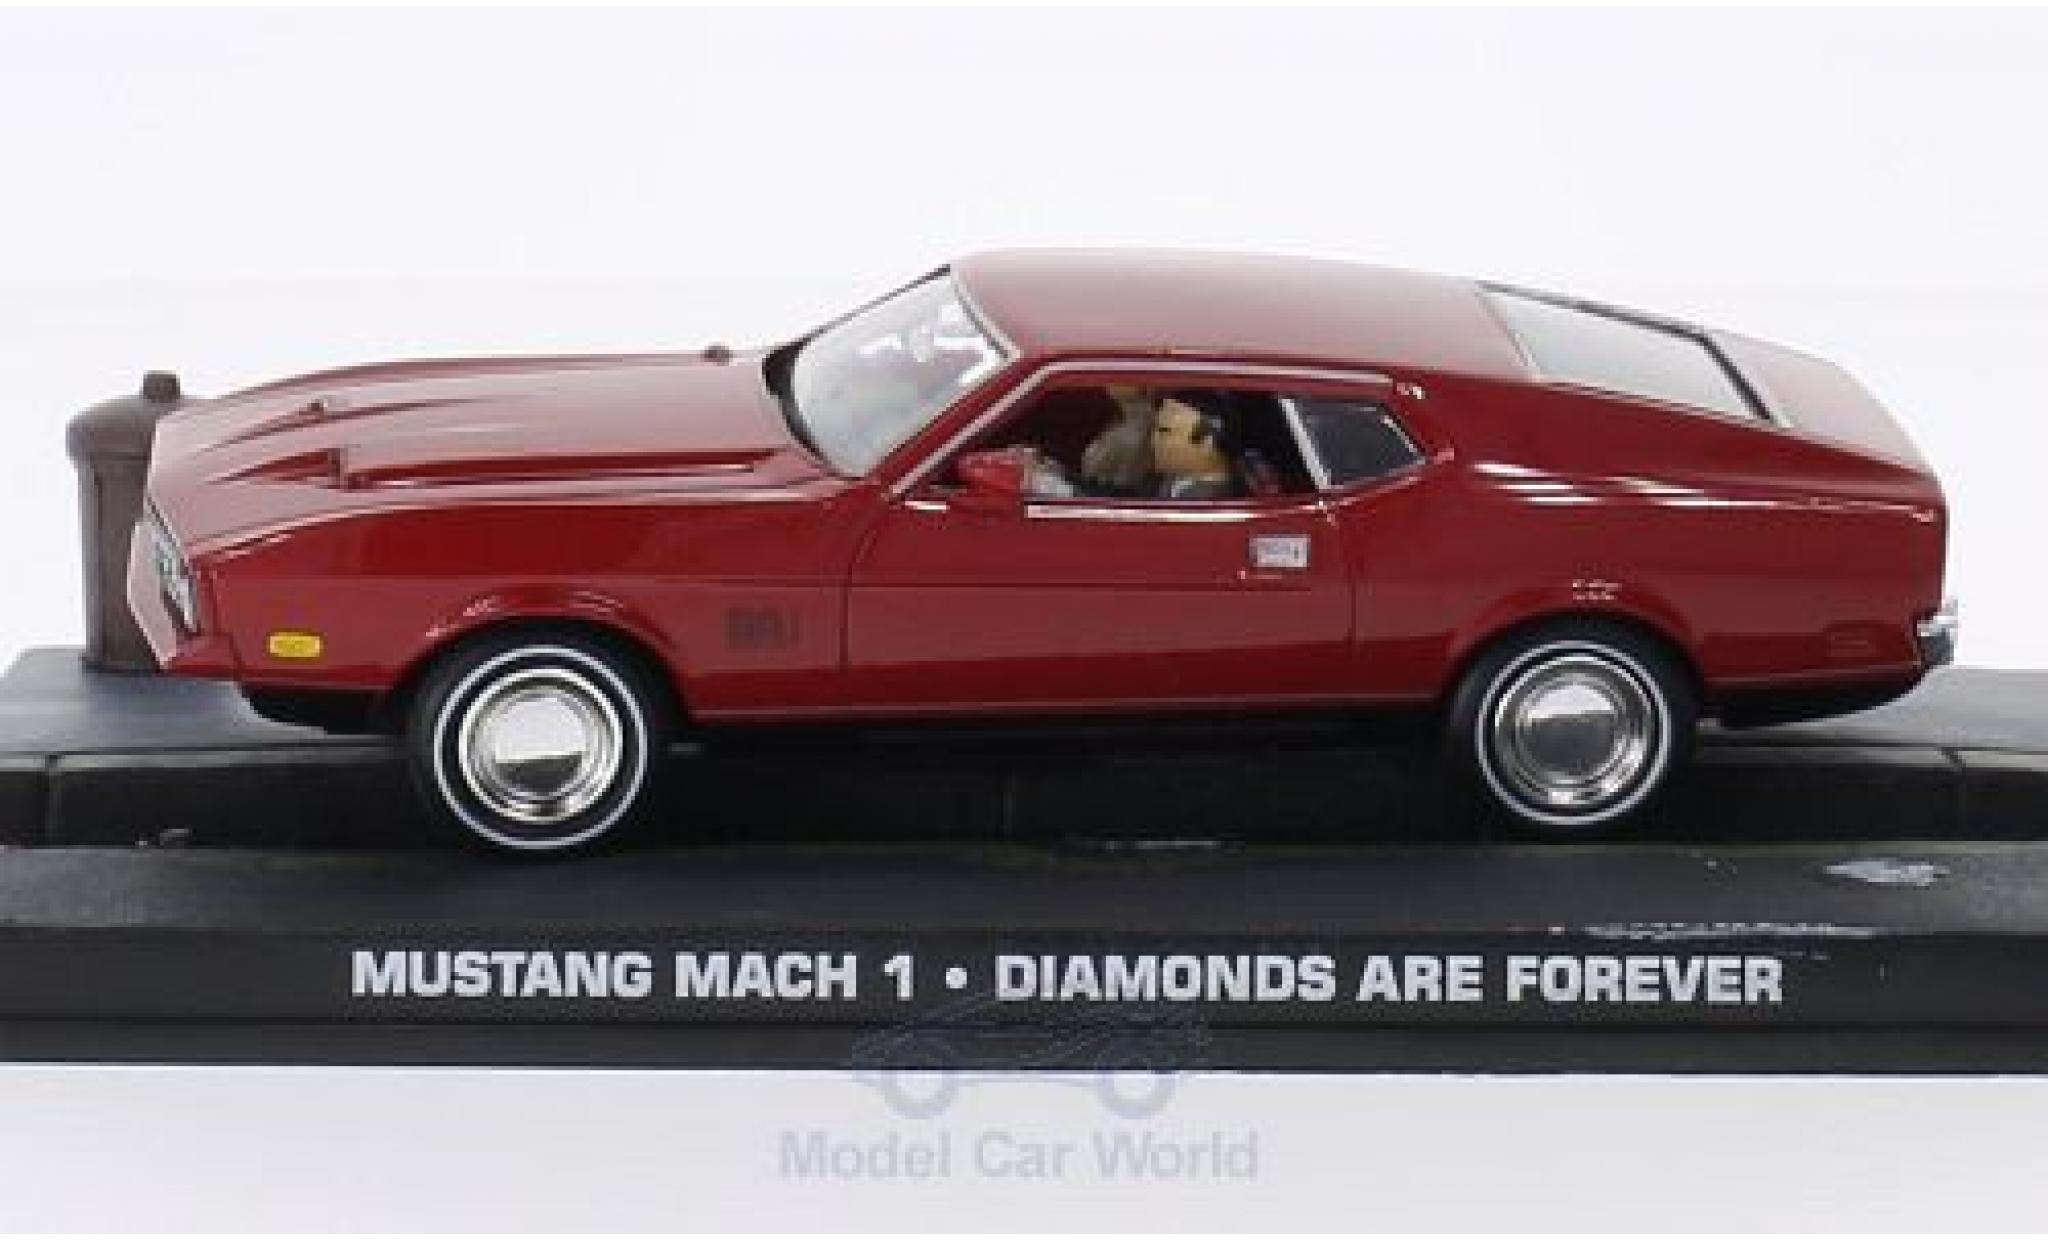 Ford Mustang 1/43 SpecialC. 007 Mach 1 rouge James Bond 007 1965 Diamantenfieber ohne Vitrine